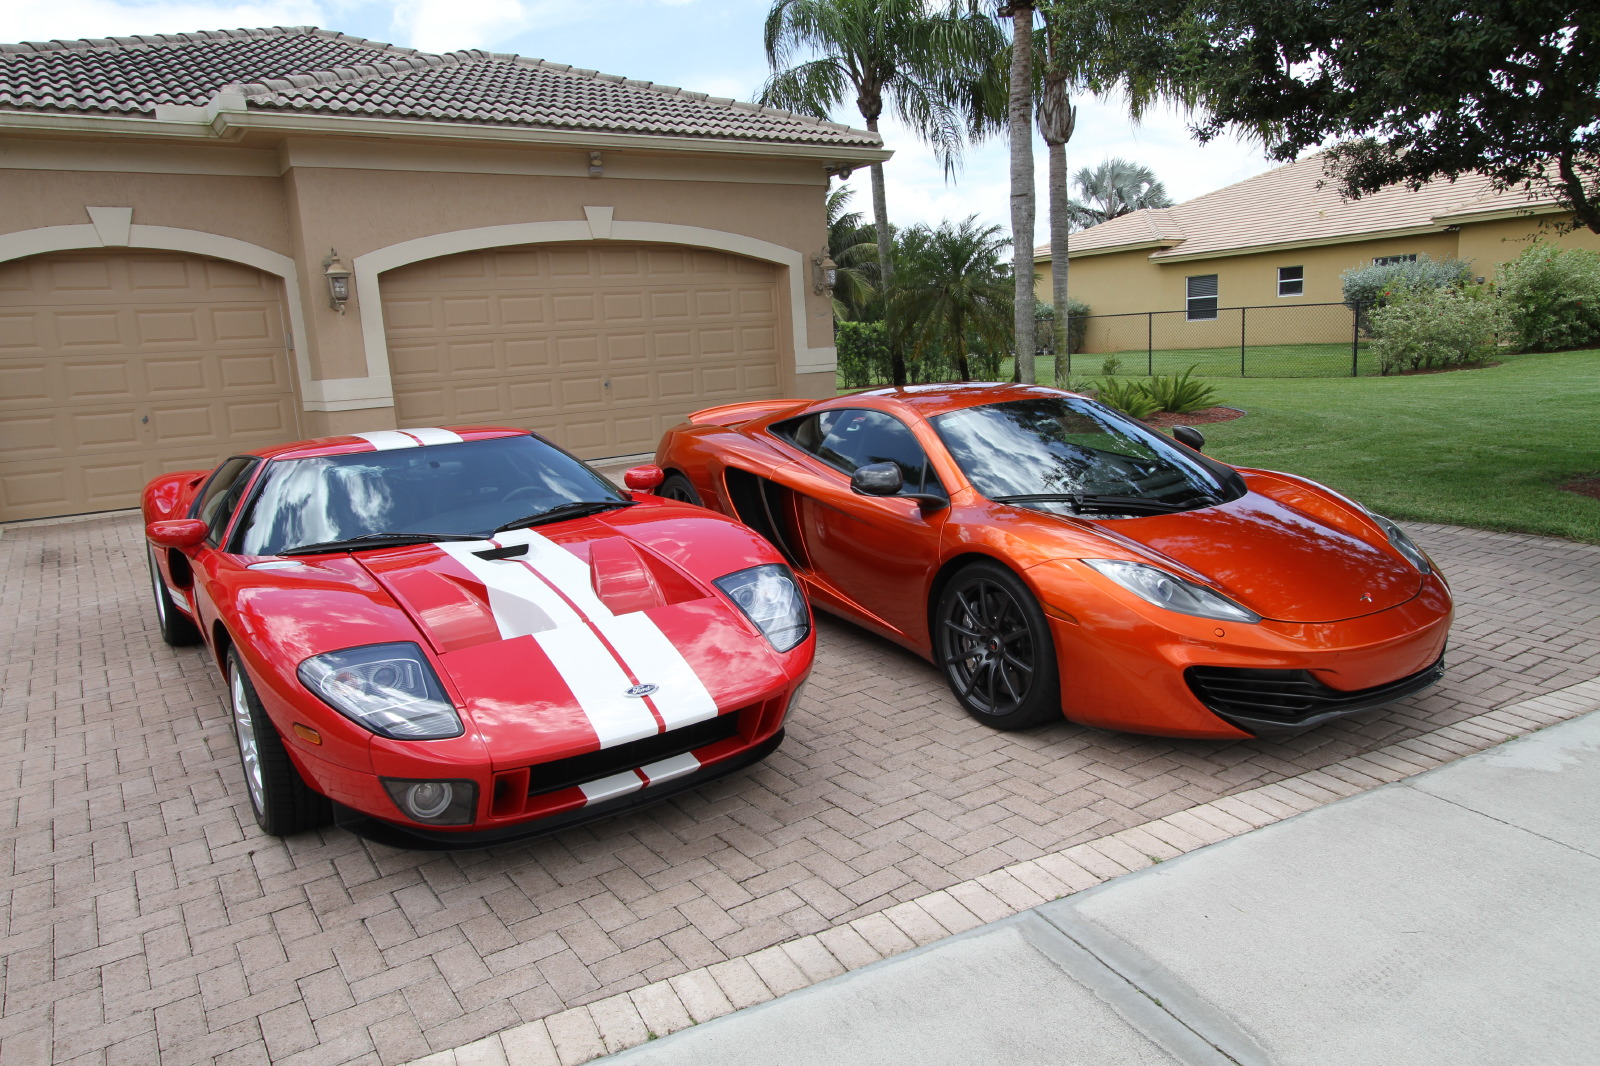 mclaren-mp4-12c-volcano-orange-vs-ford-gt-red-white-007.jpg